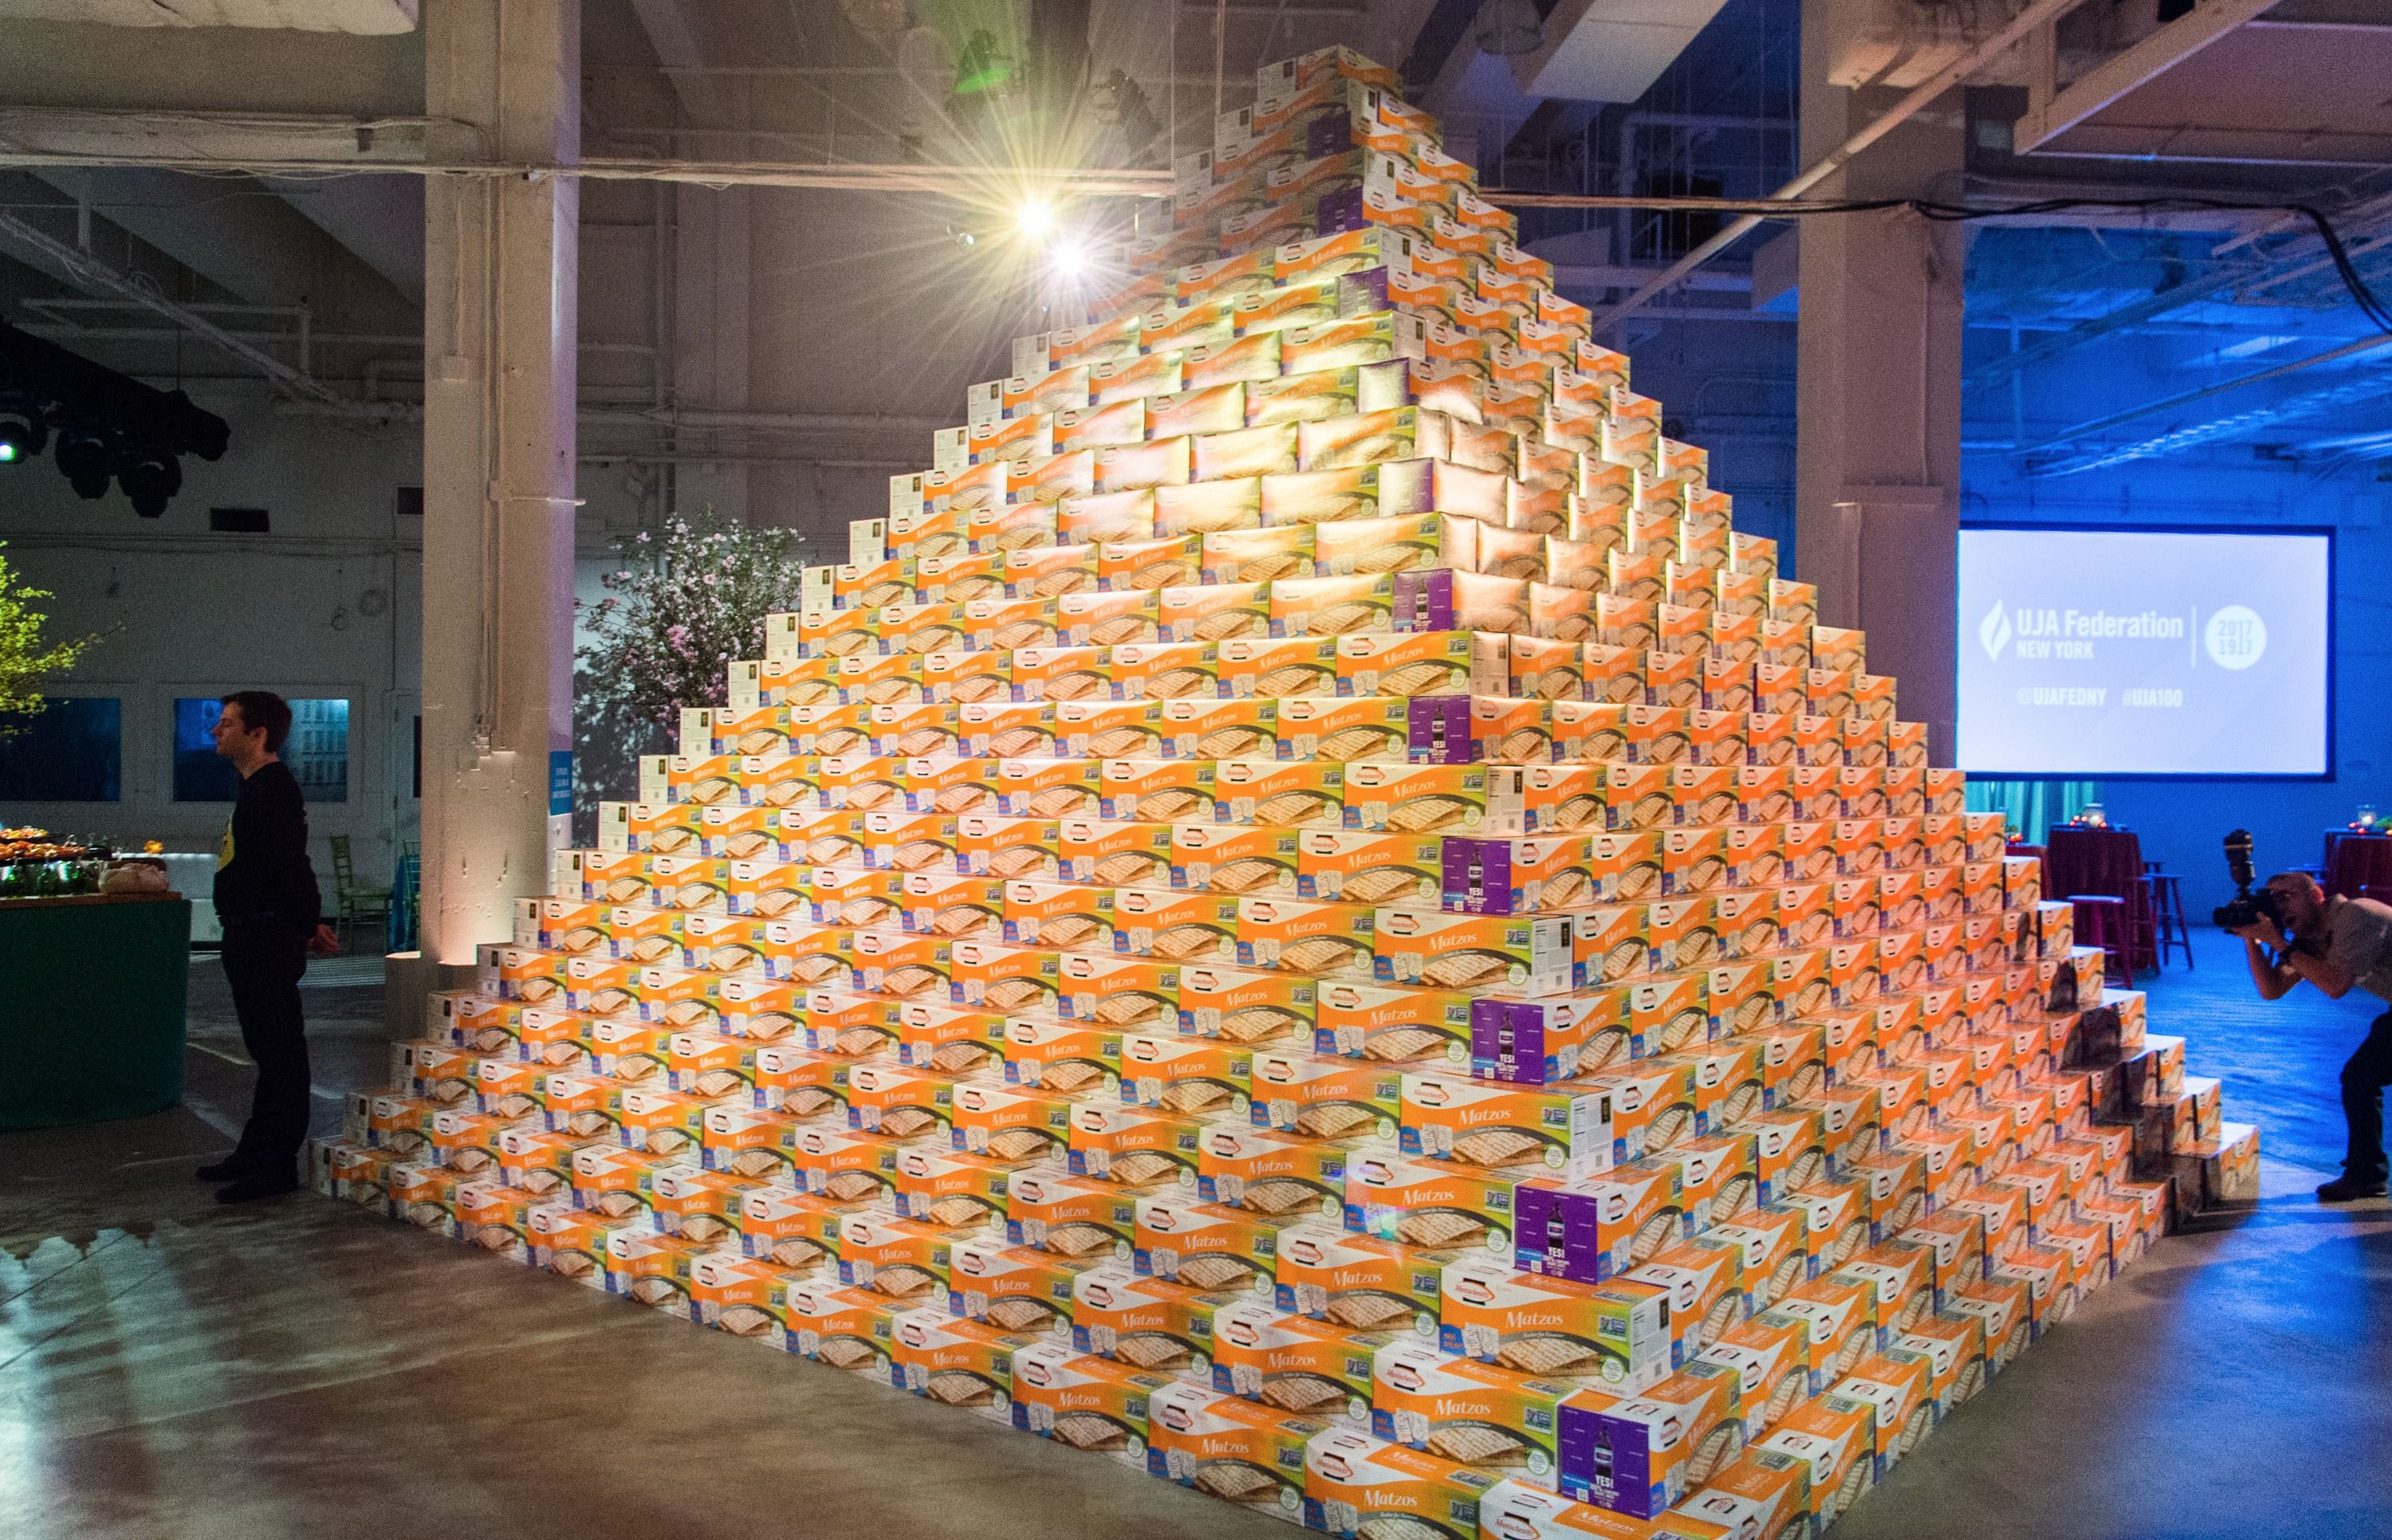 A pyramid of matzah boxes at the UJA-Federation of New York's 2017 gala in April.